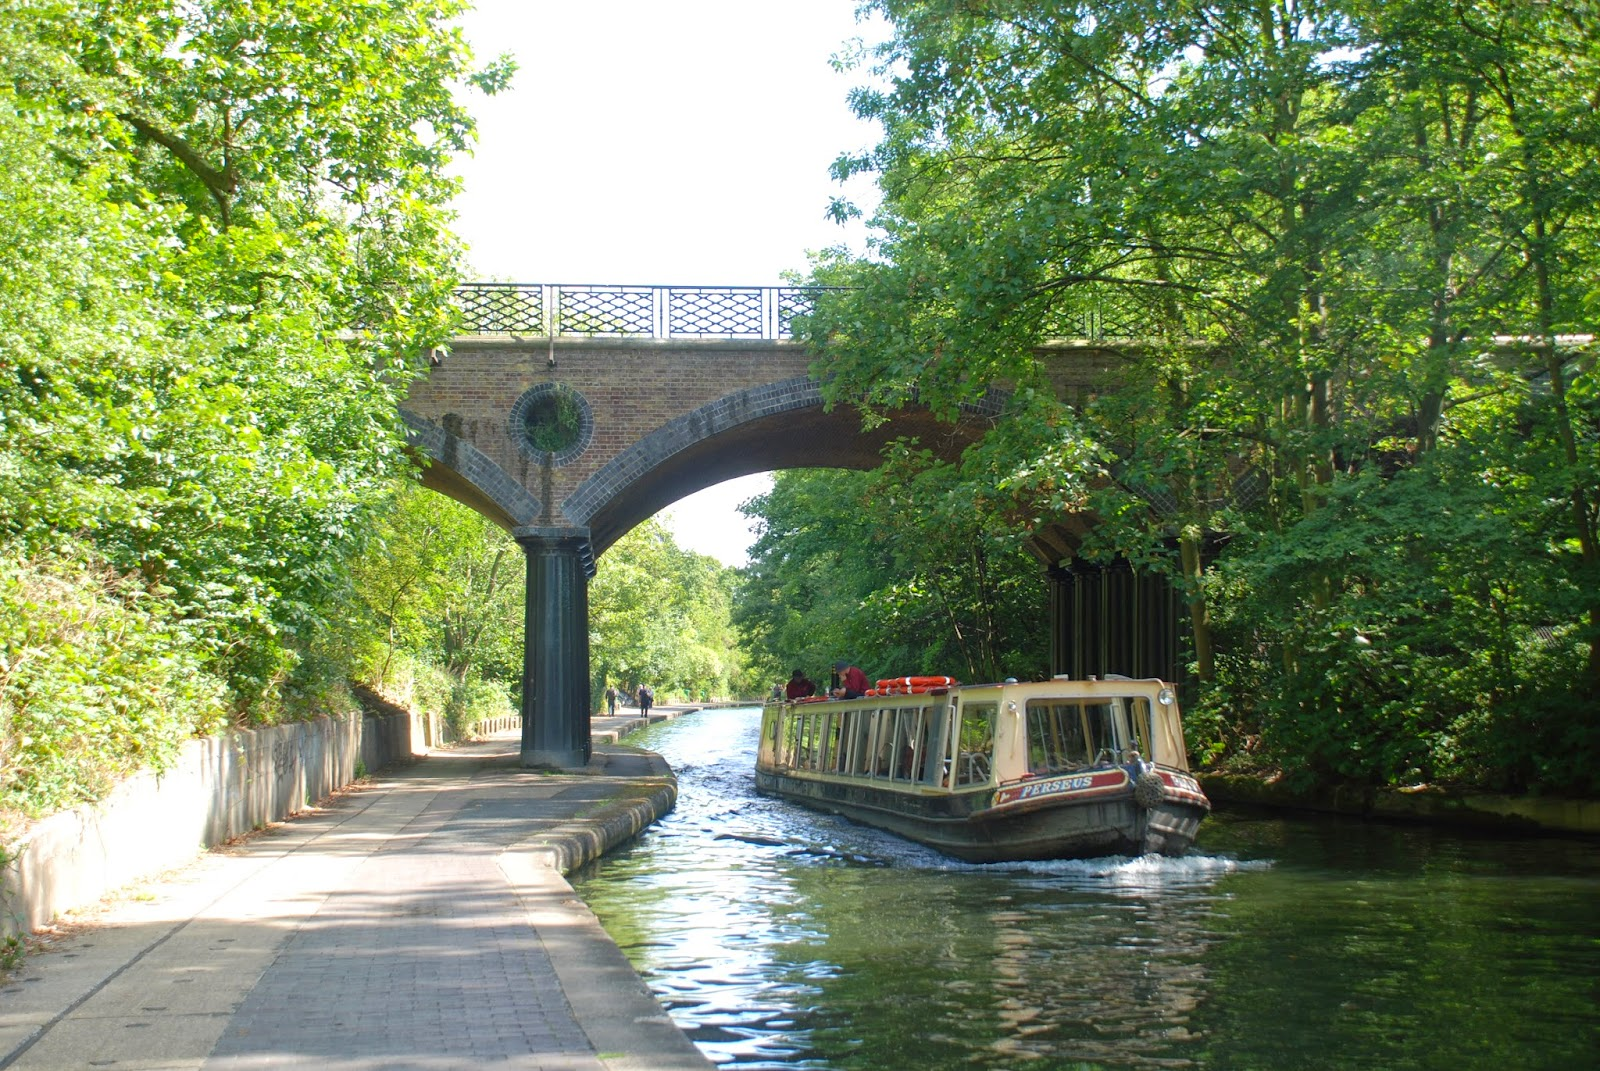 Macclesfield Bridge,Regent's Canal, London